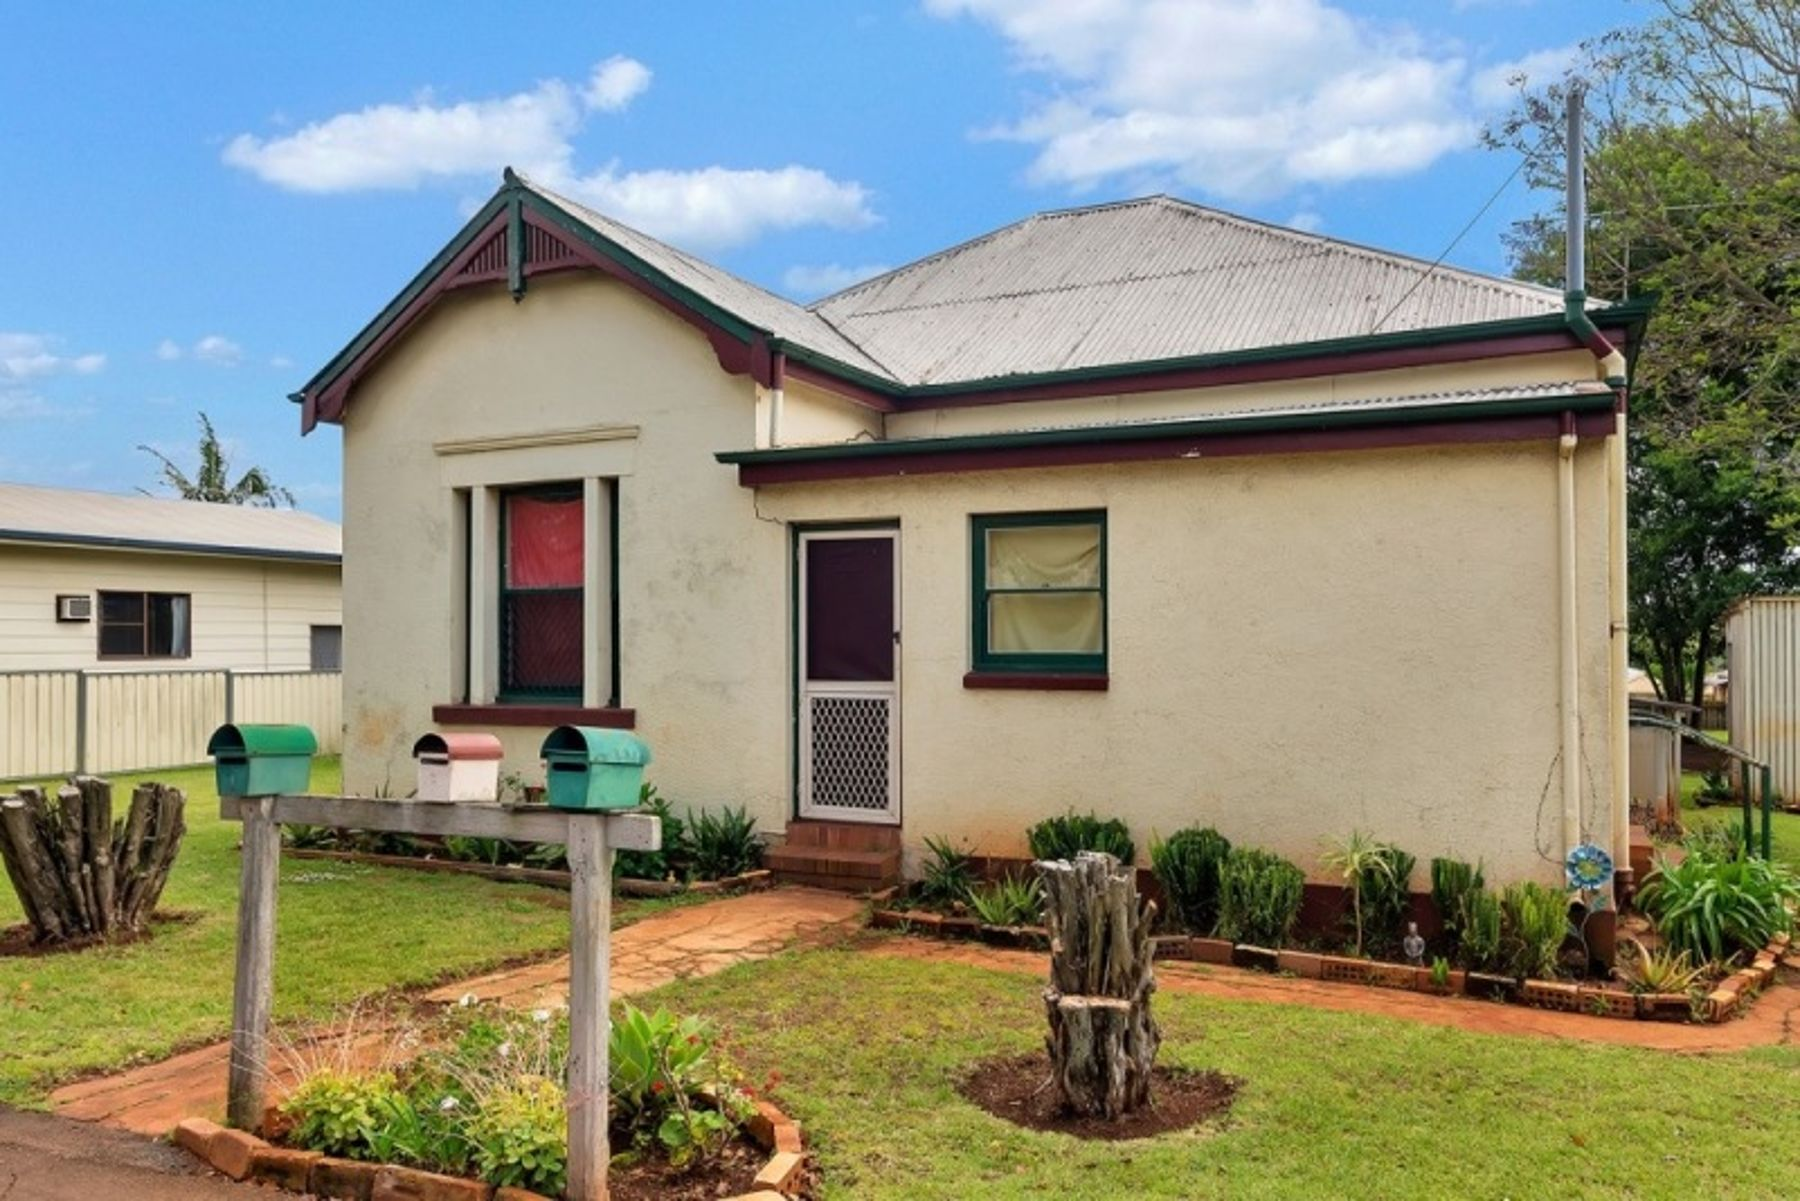 Property For Rent in East Toowoomba